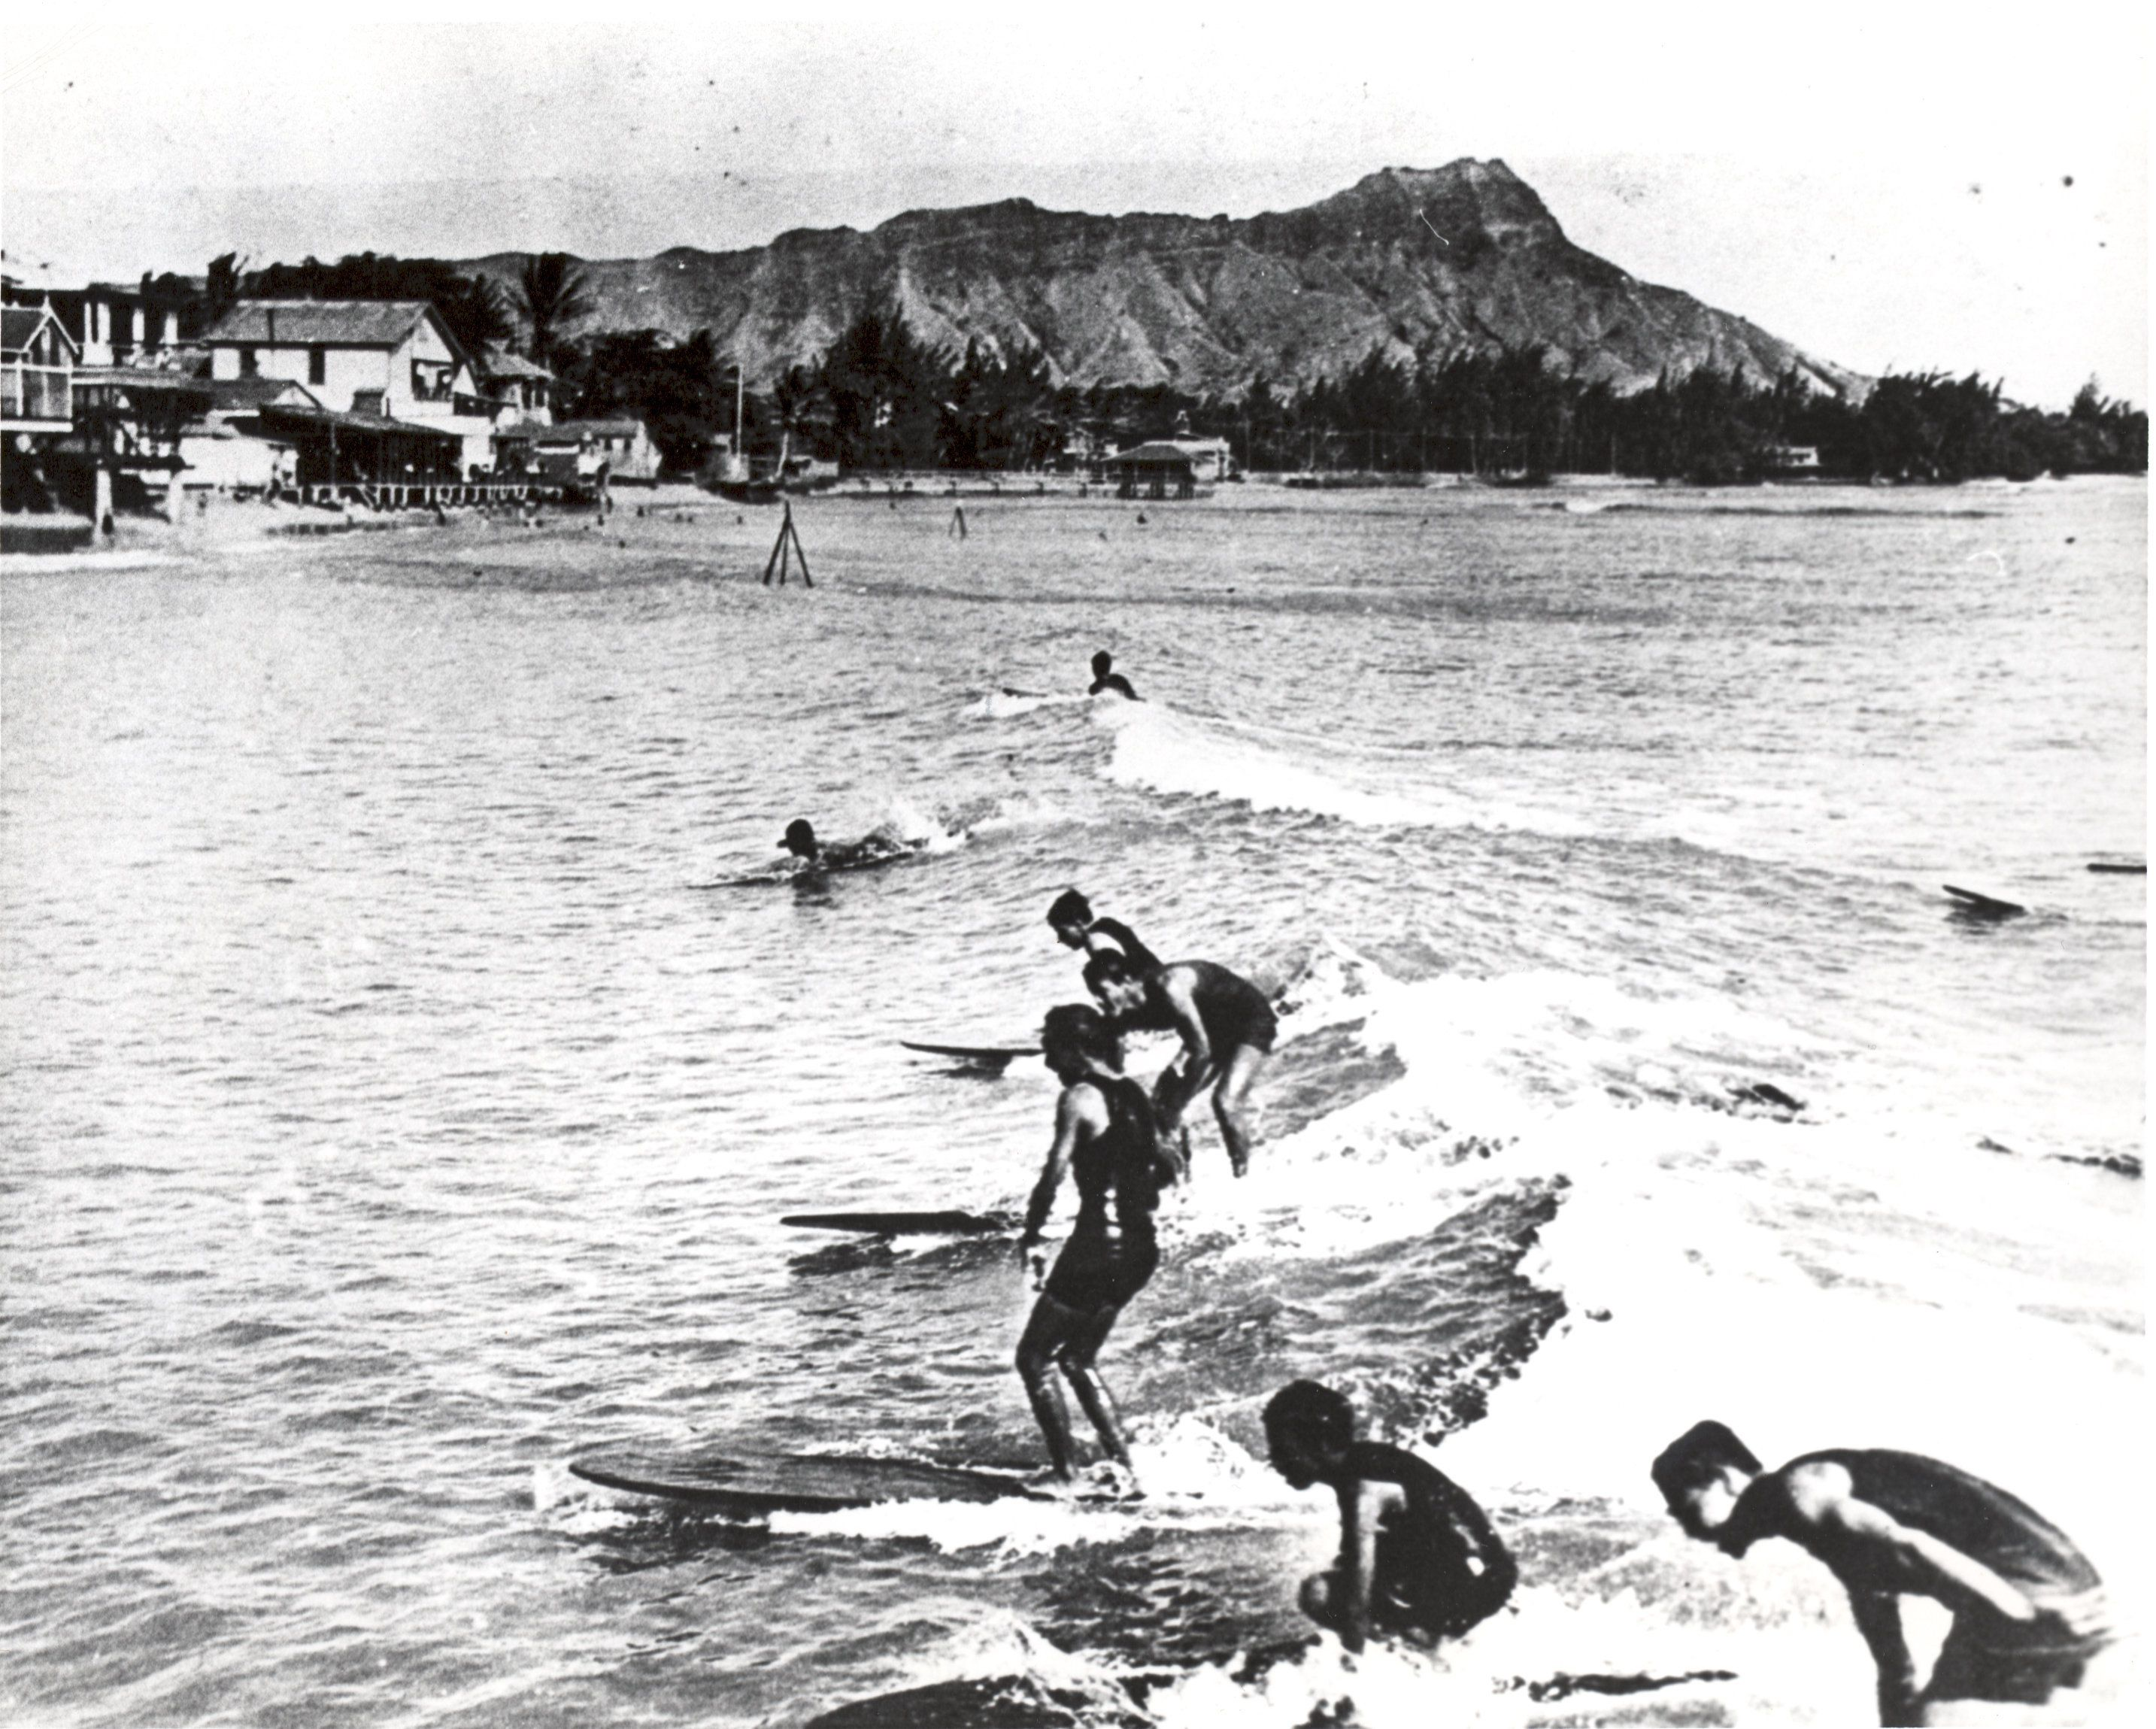 Surfers ride the waves at one of Waikiki's famed surf breaks in the early 1900s.